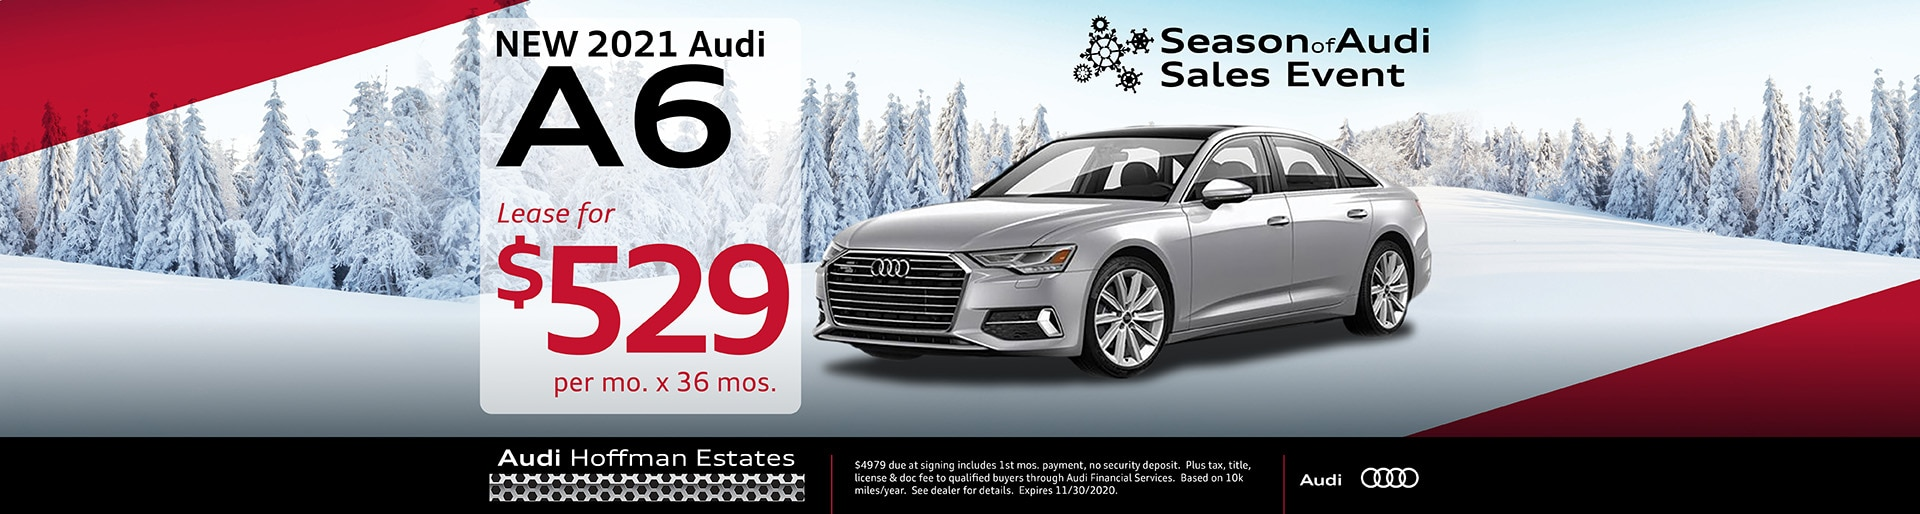 2021 Audi A6 lease offer, $529/mo for 36 months | Hoffman Estates, IL